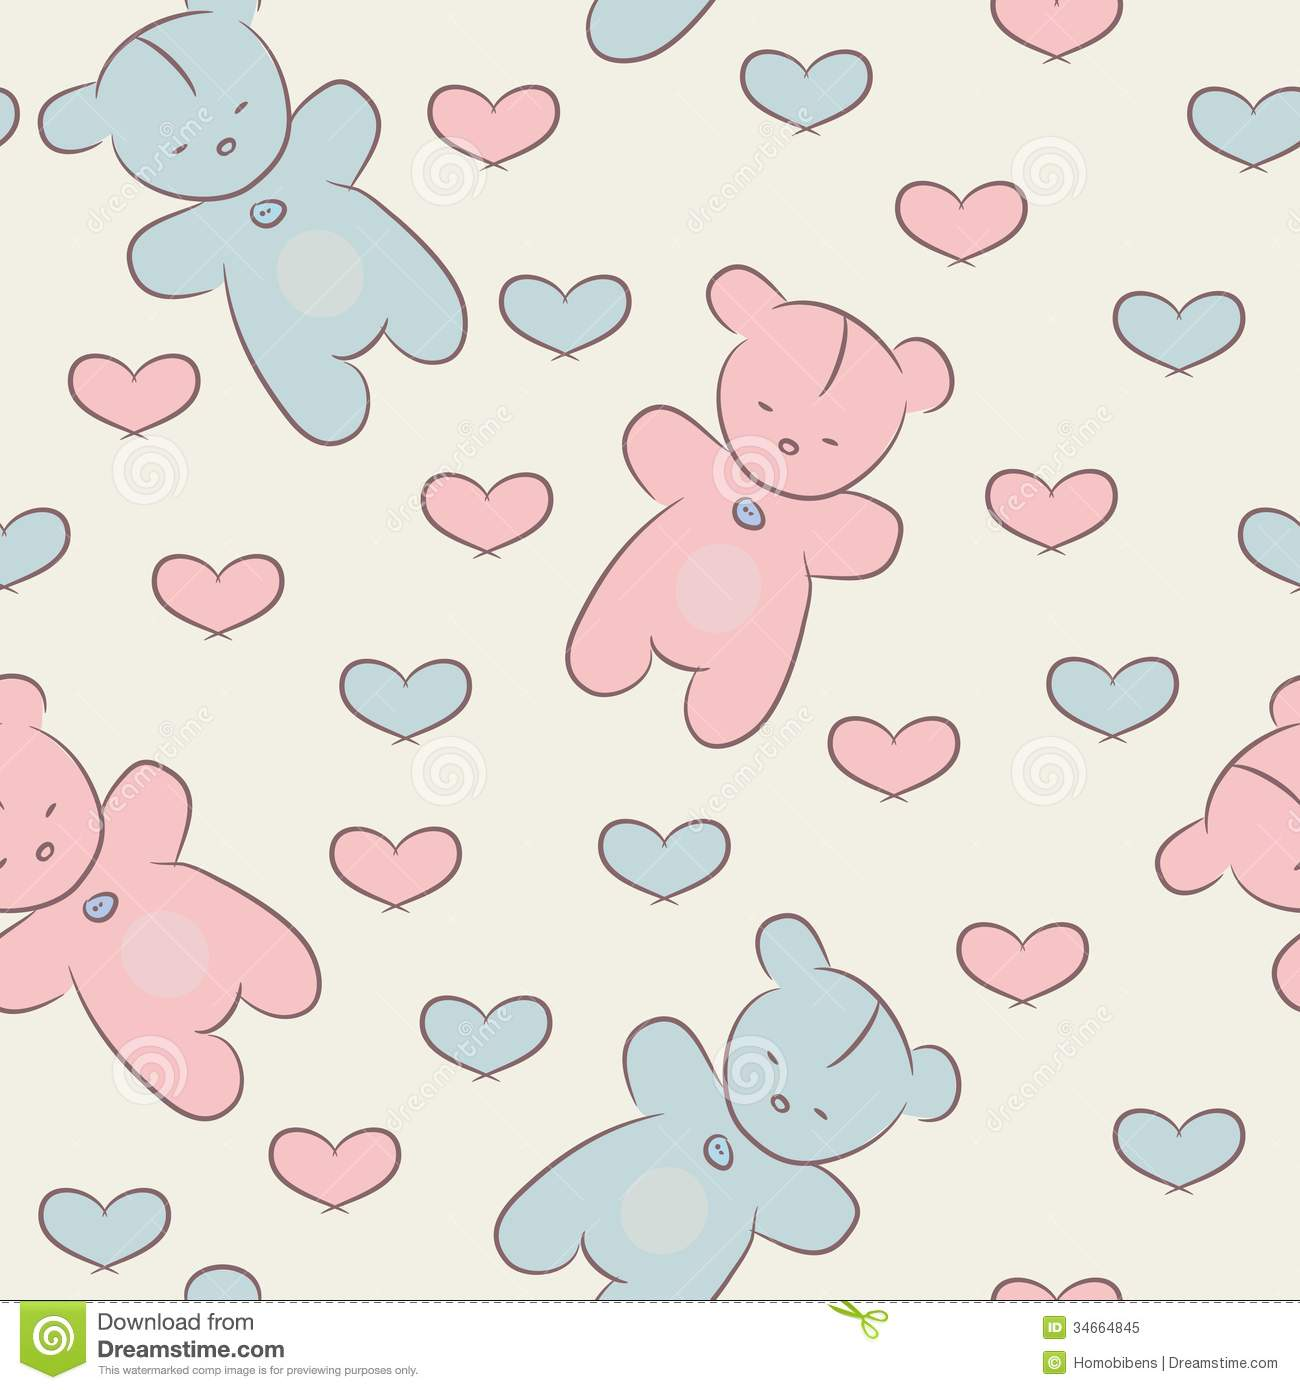 Seamless Pattern With Teddy Bears And Hearts. Royalty Free Stock Photo ...